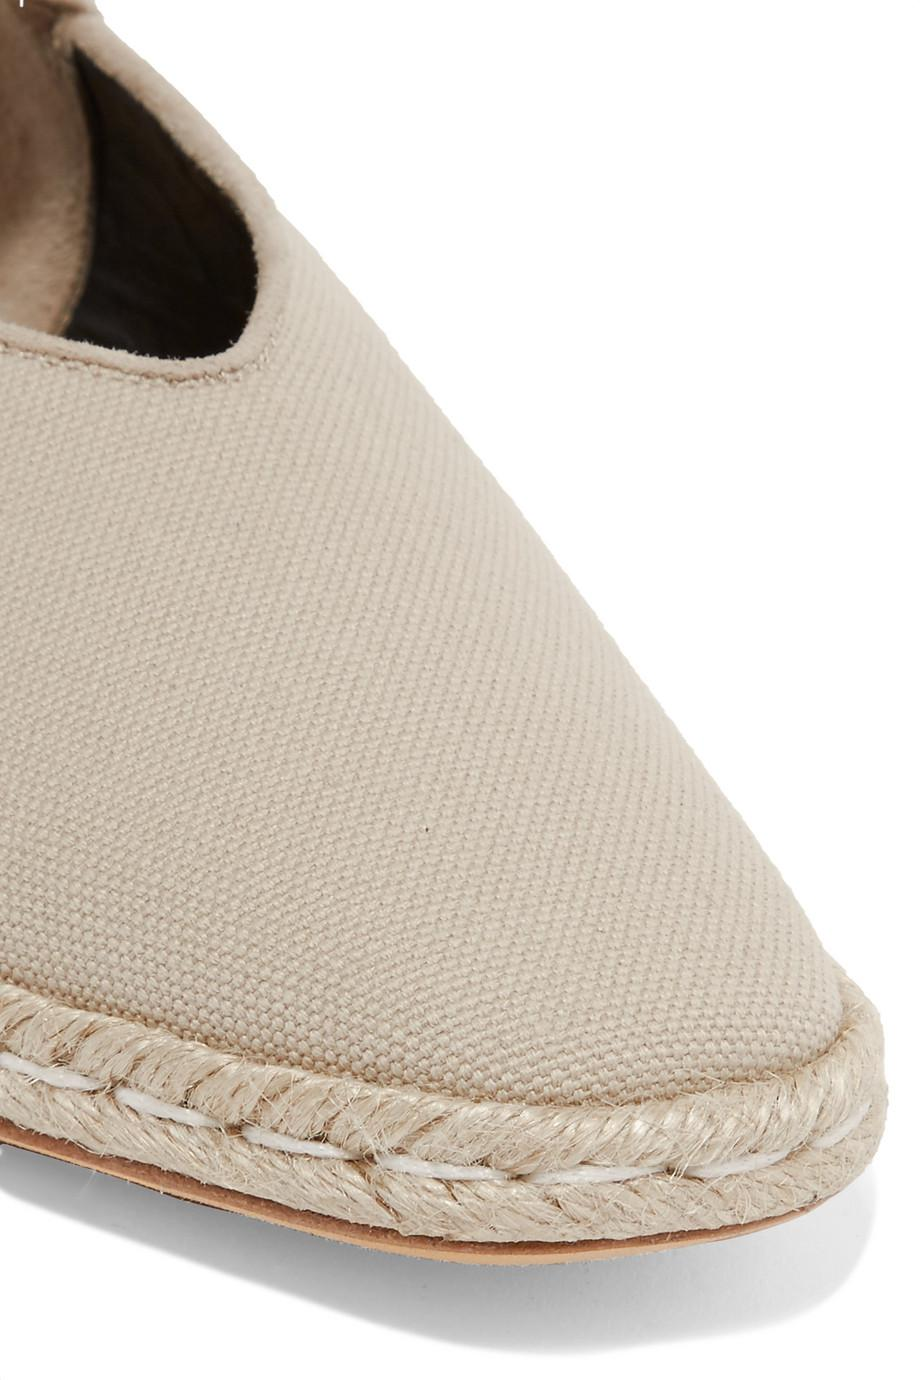 Suede-trimmed Canvas Espadrilles - Beige J.W.Anderson